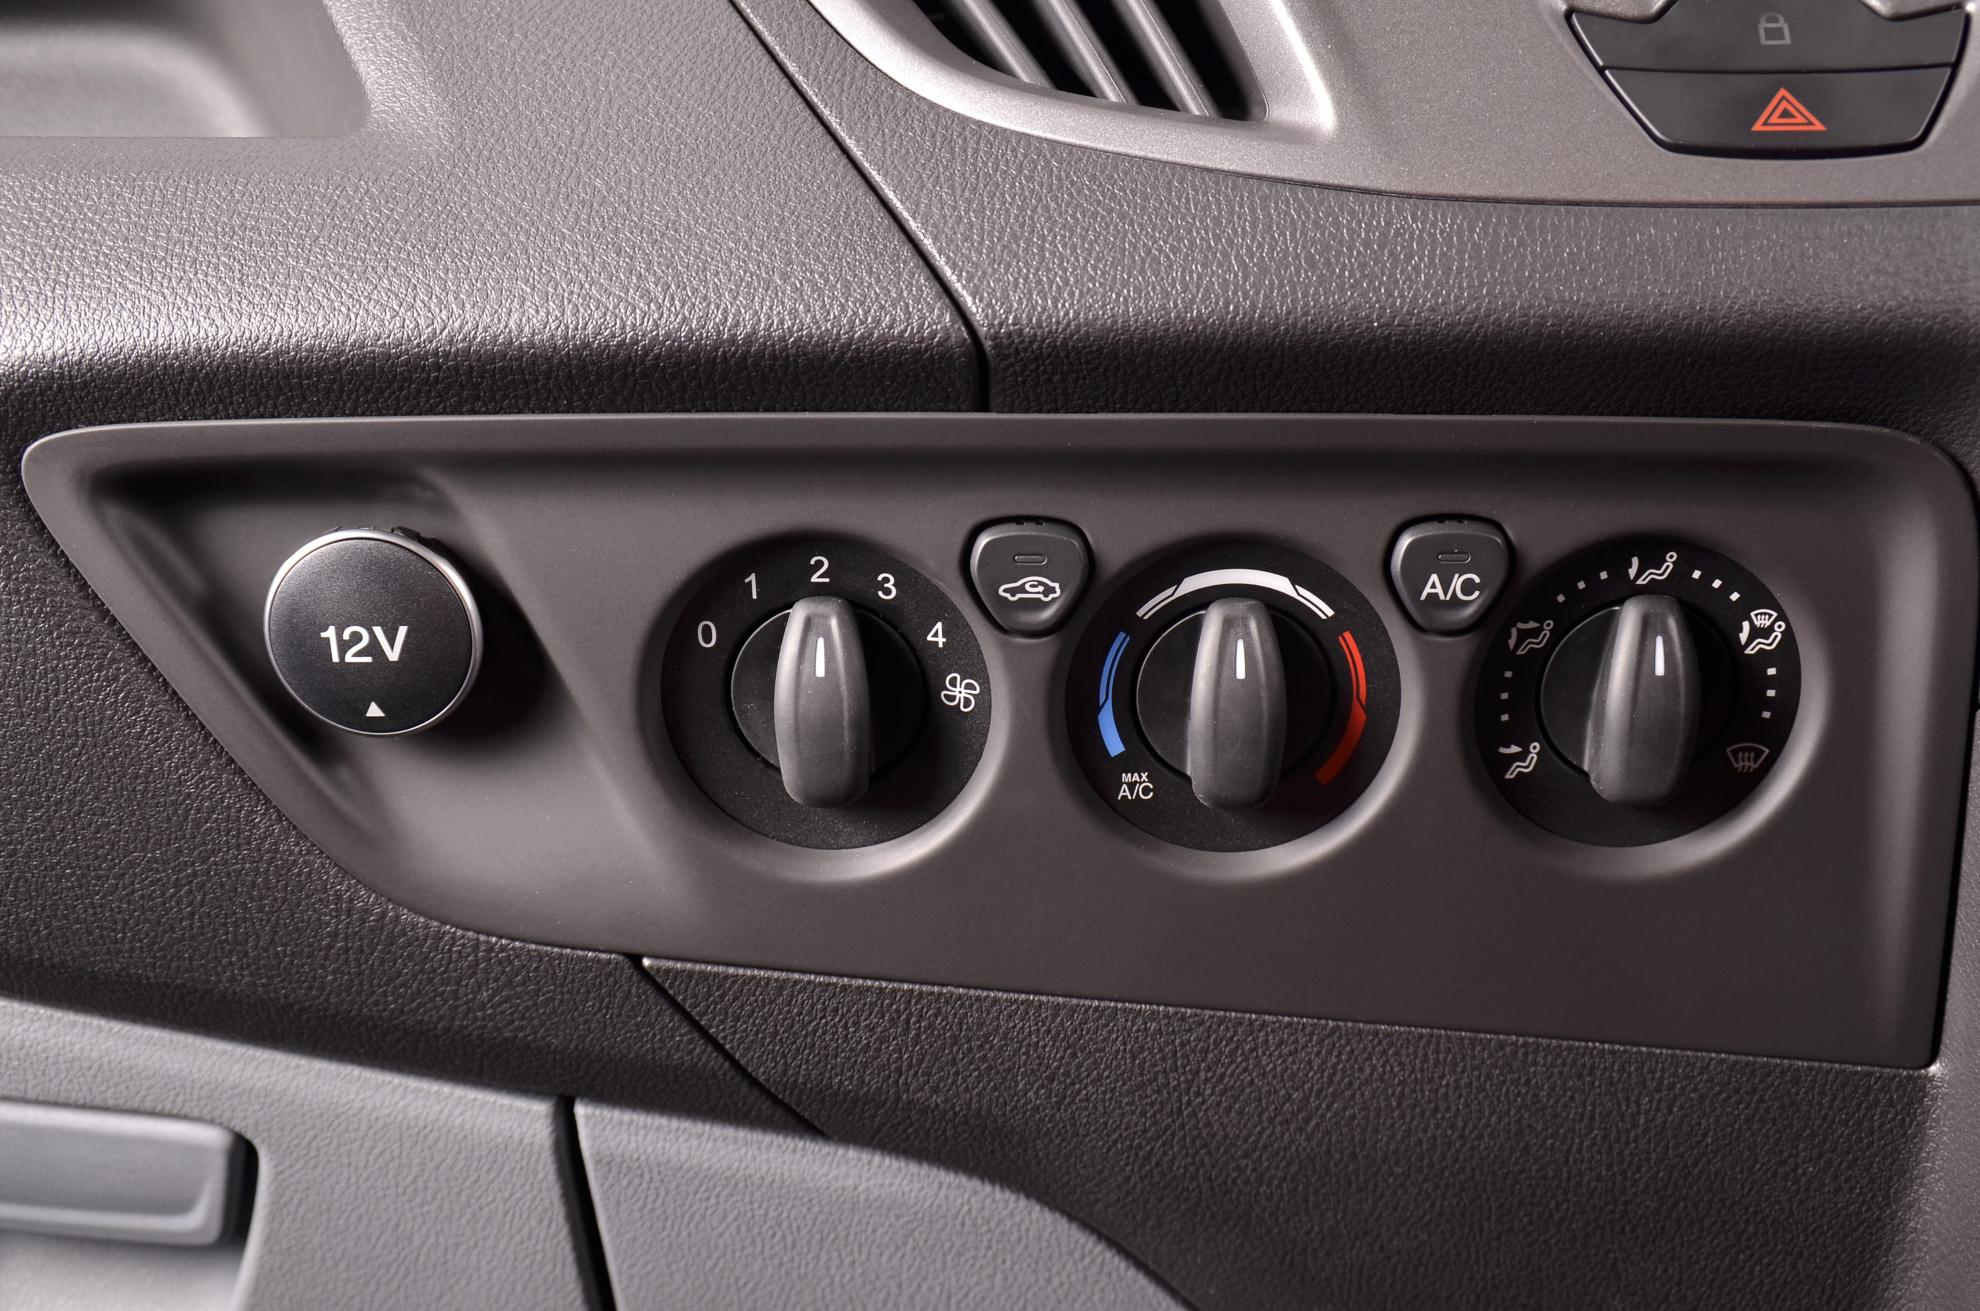 Ford Transit Dashboard Controls